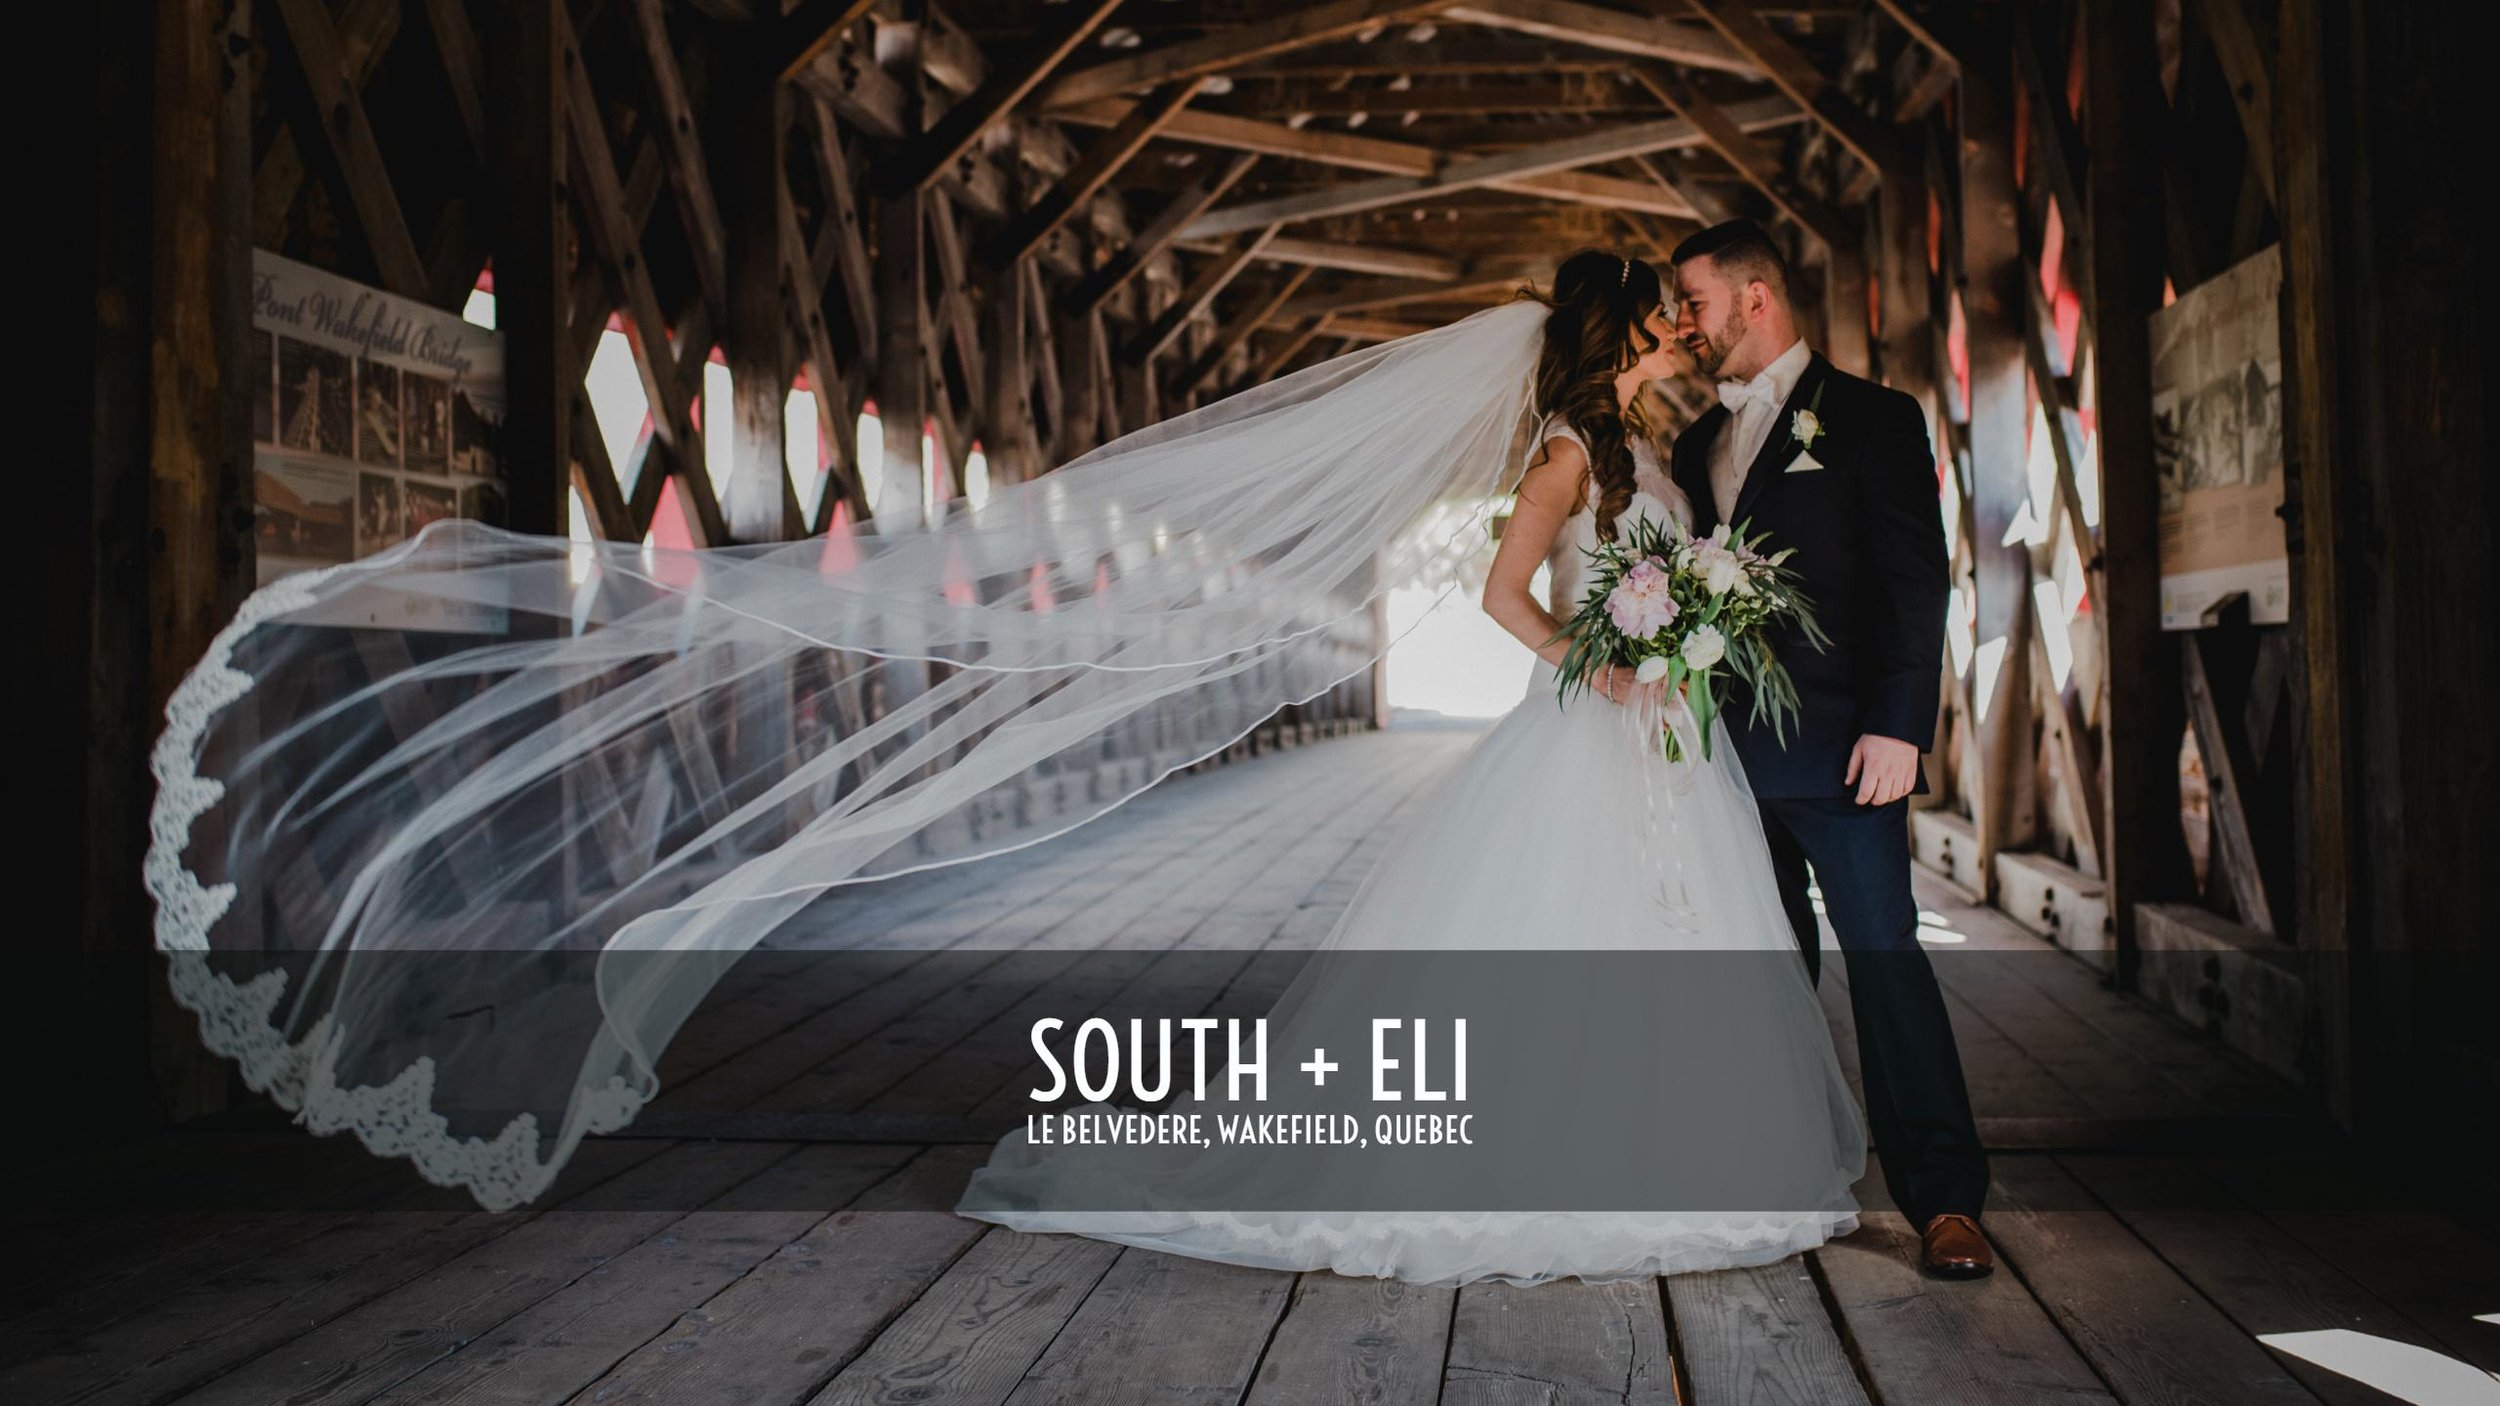 South and Eli Le Belvedere Wakefield